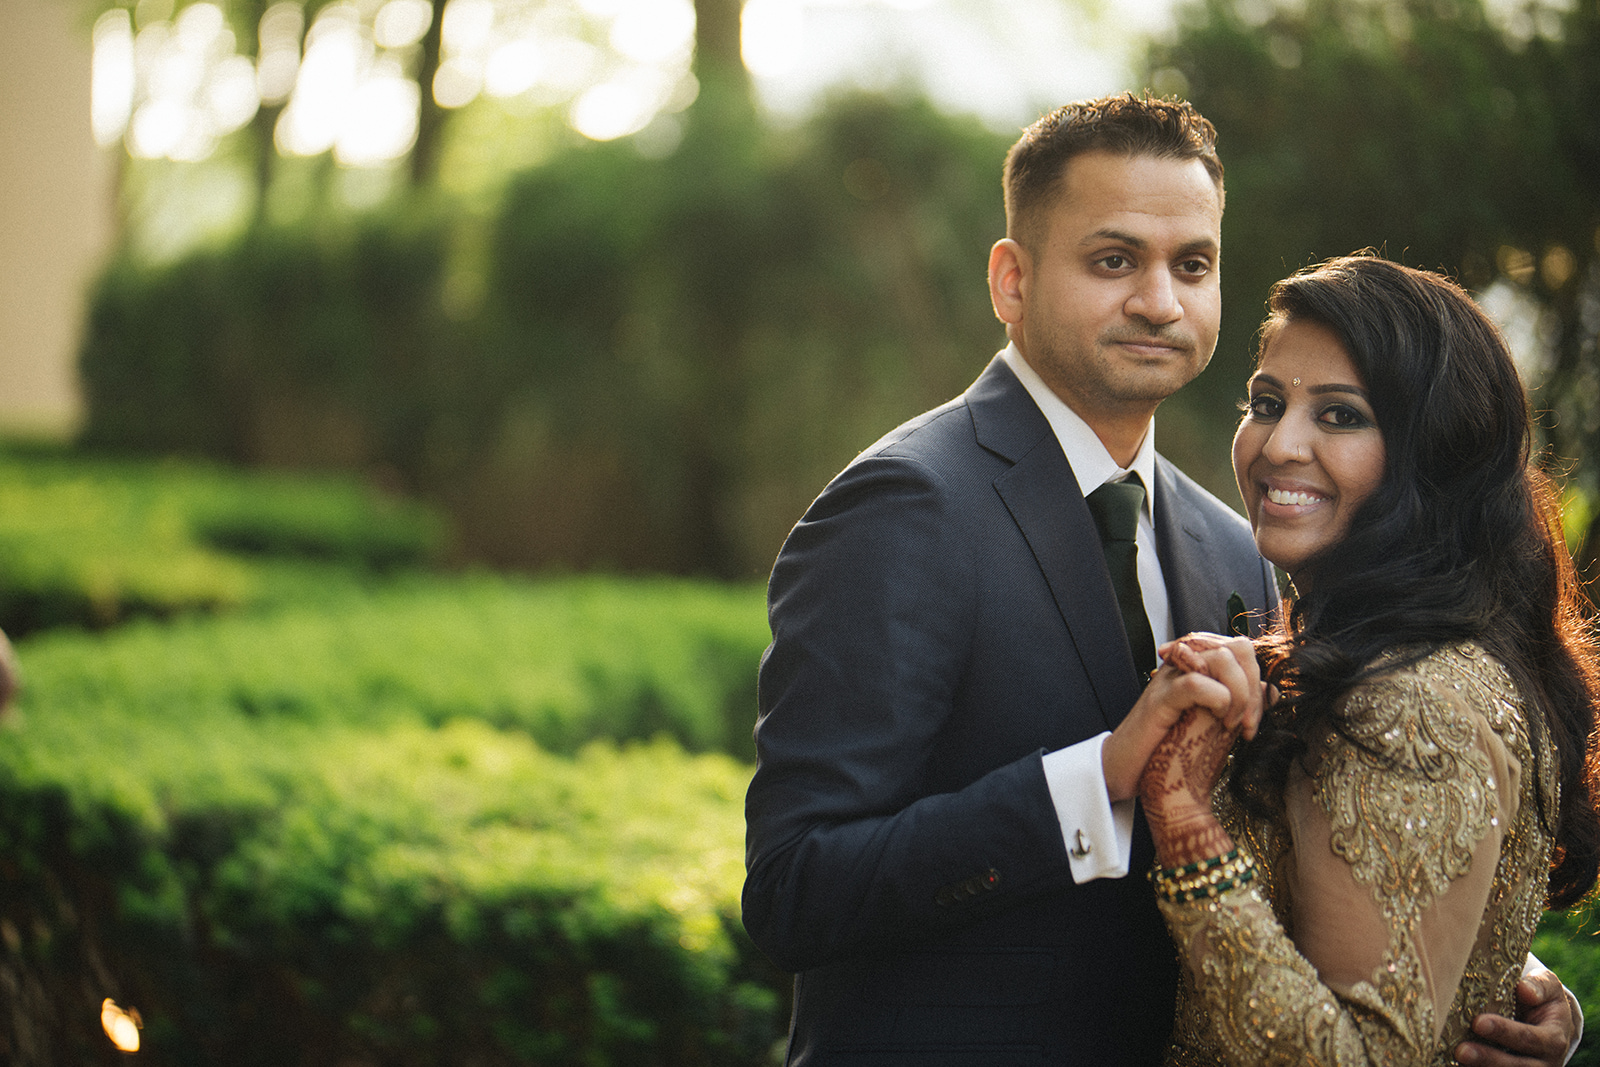 Le Cape Weddings - Swati and Ankur - Sneak Peek -2-2.jpg